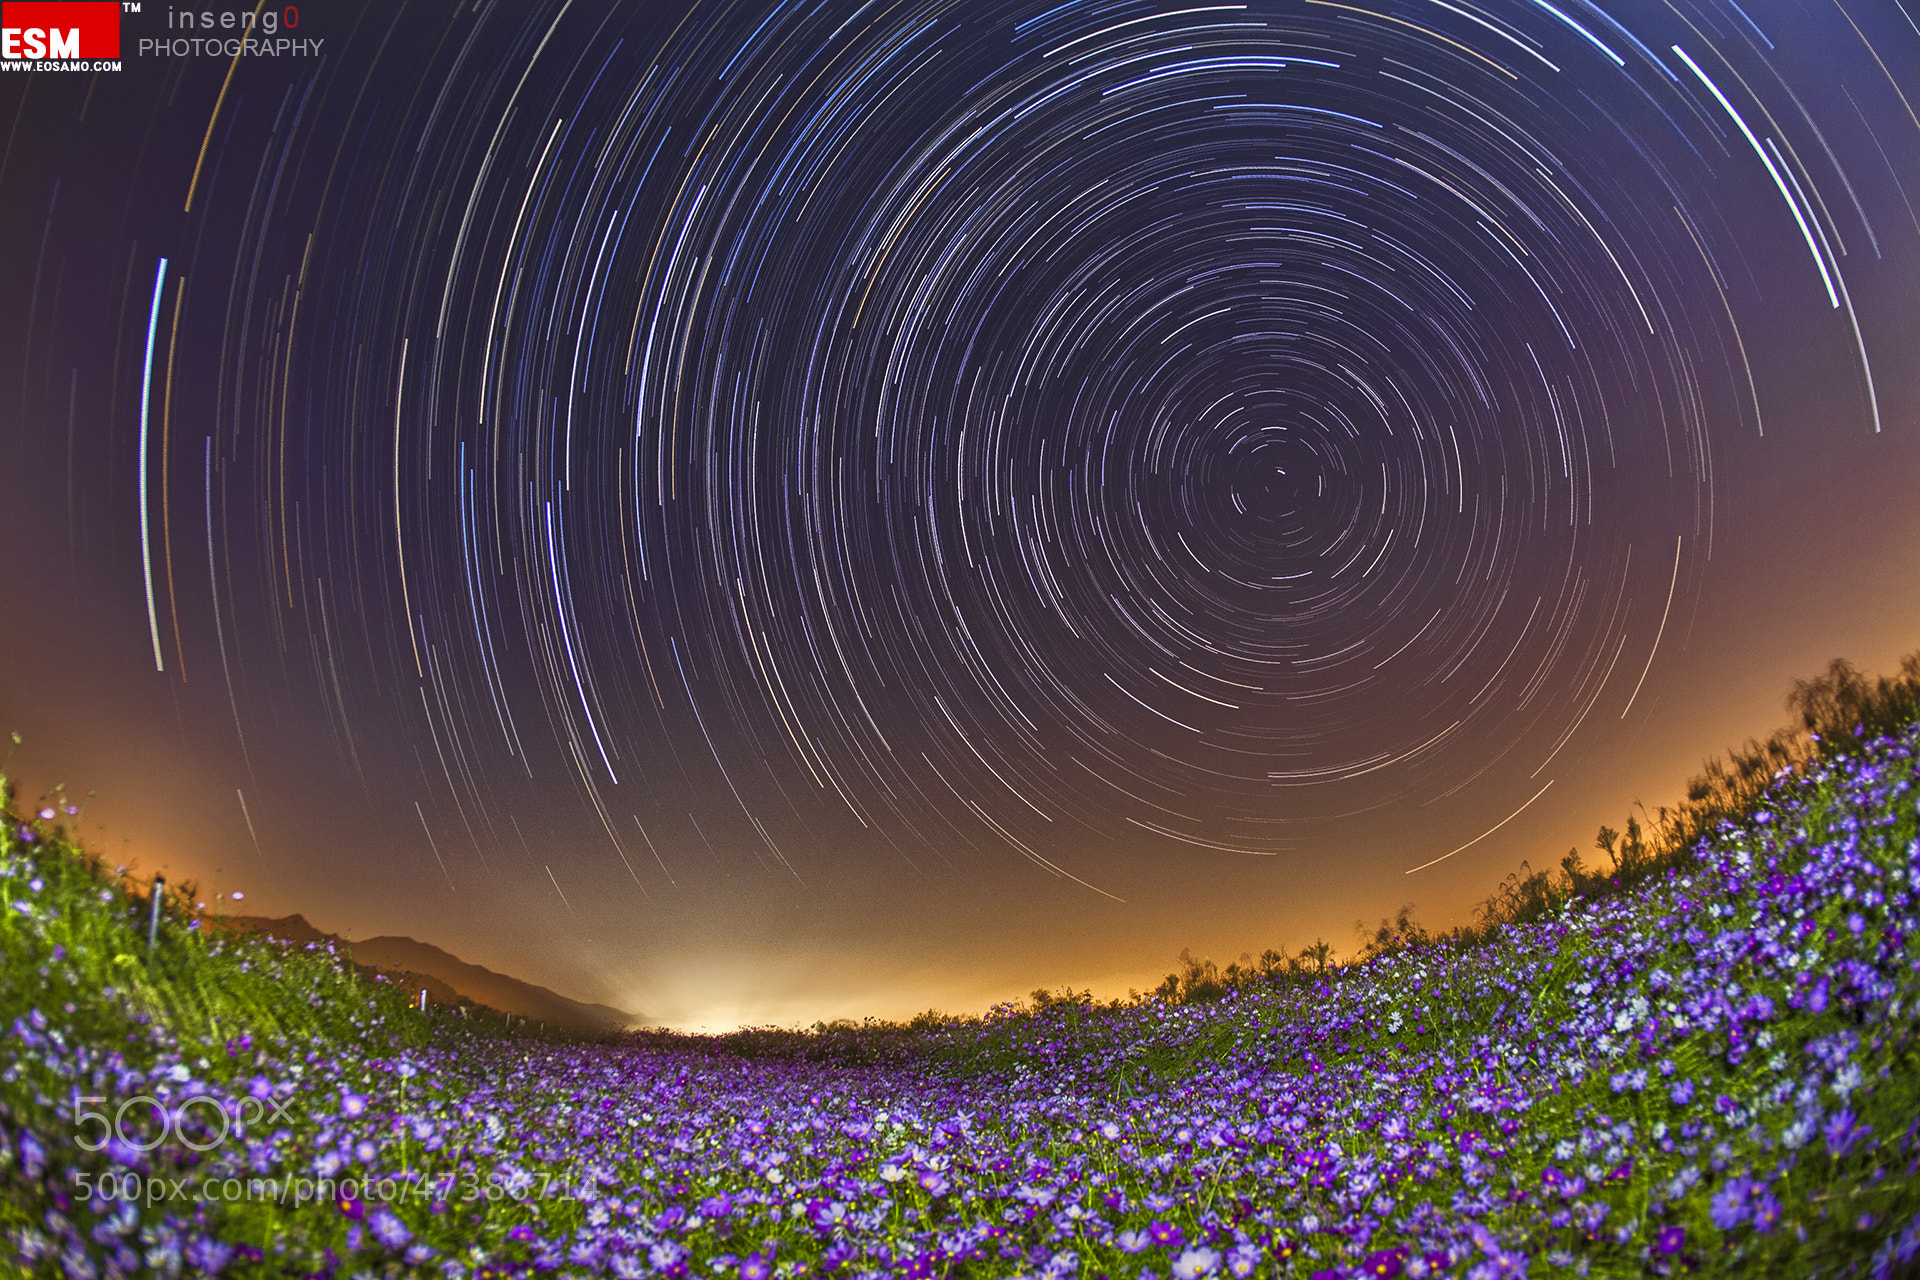 Photograph Startrails with cosmos by chan-wook Kim on 500px